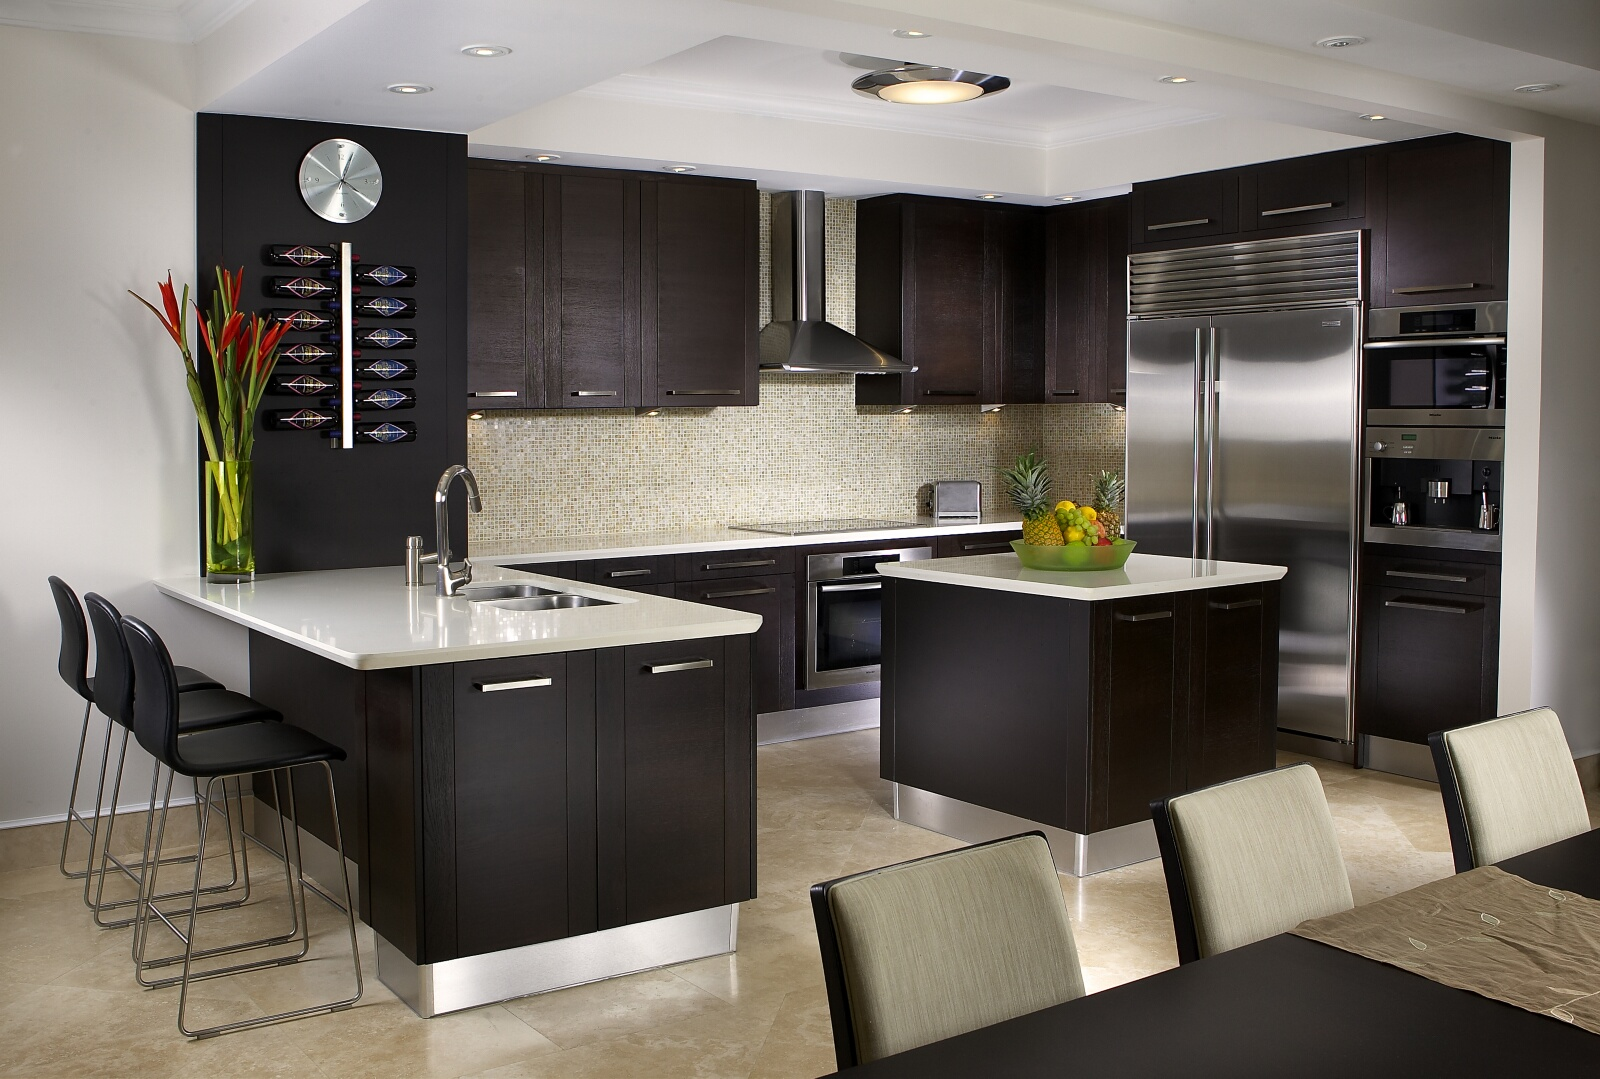 Kitchen interior design services miami florida for Kitchen design services